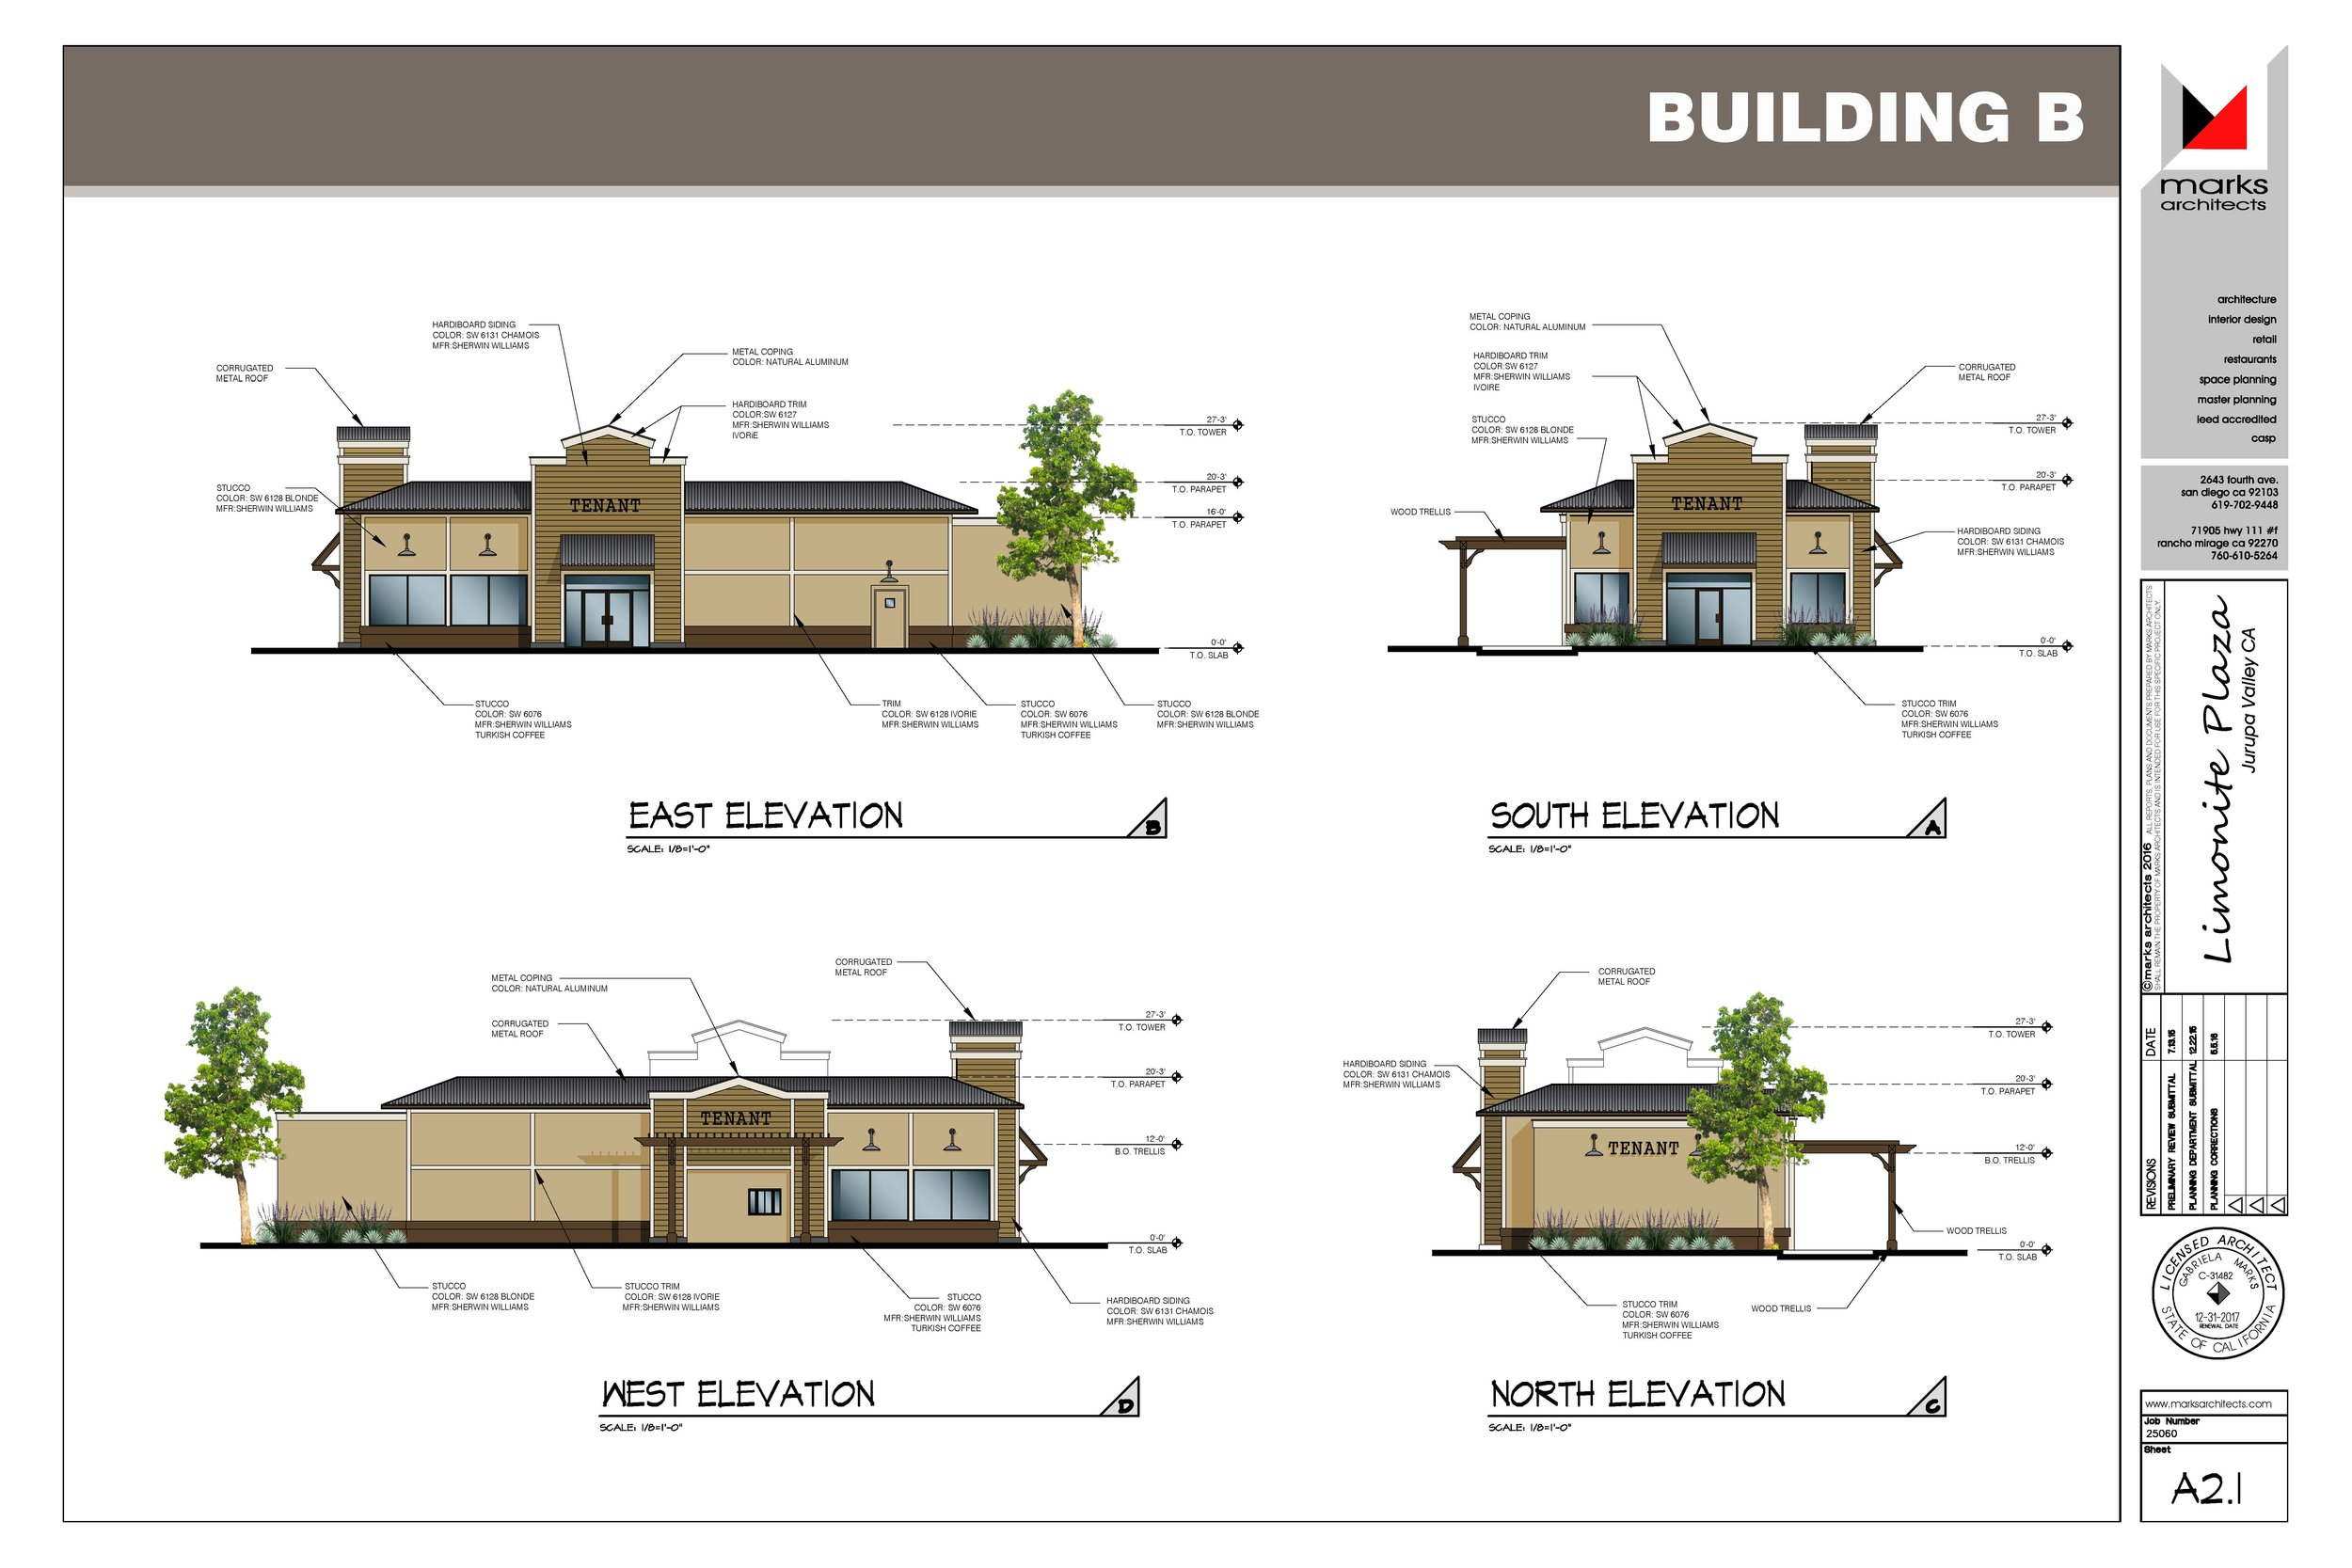 07_A2.1_Elevations Bldg B.jpg